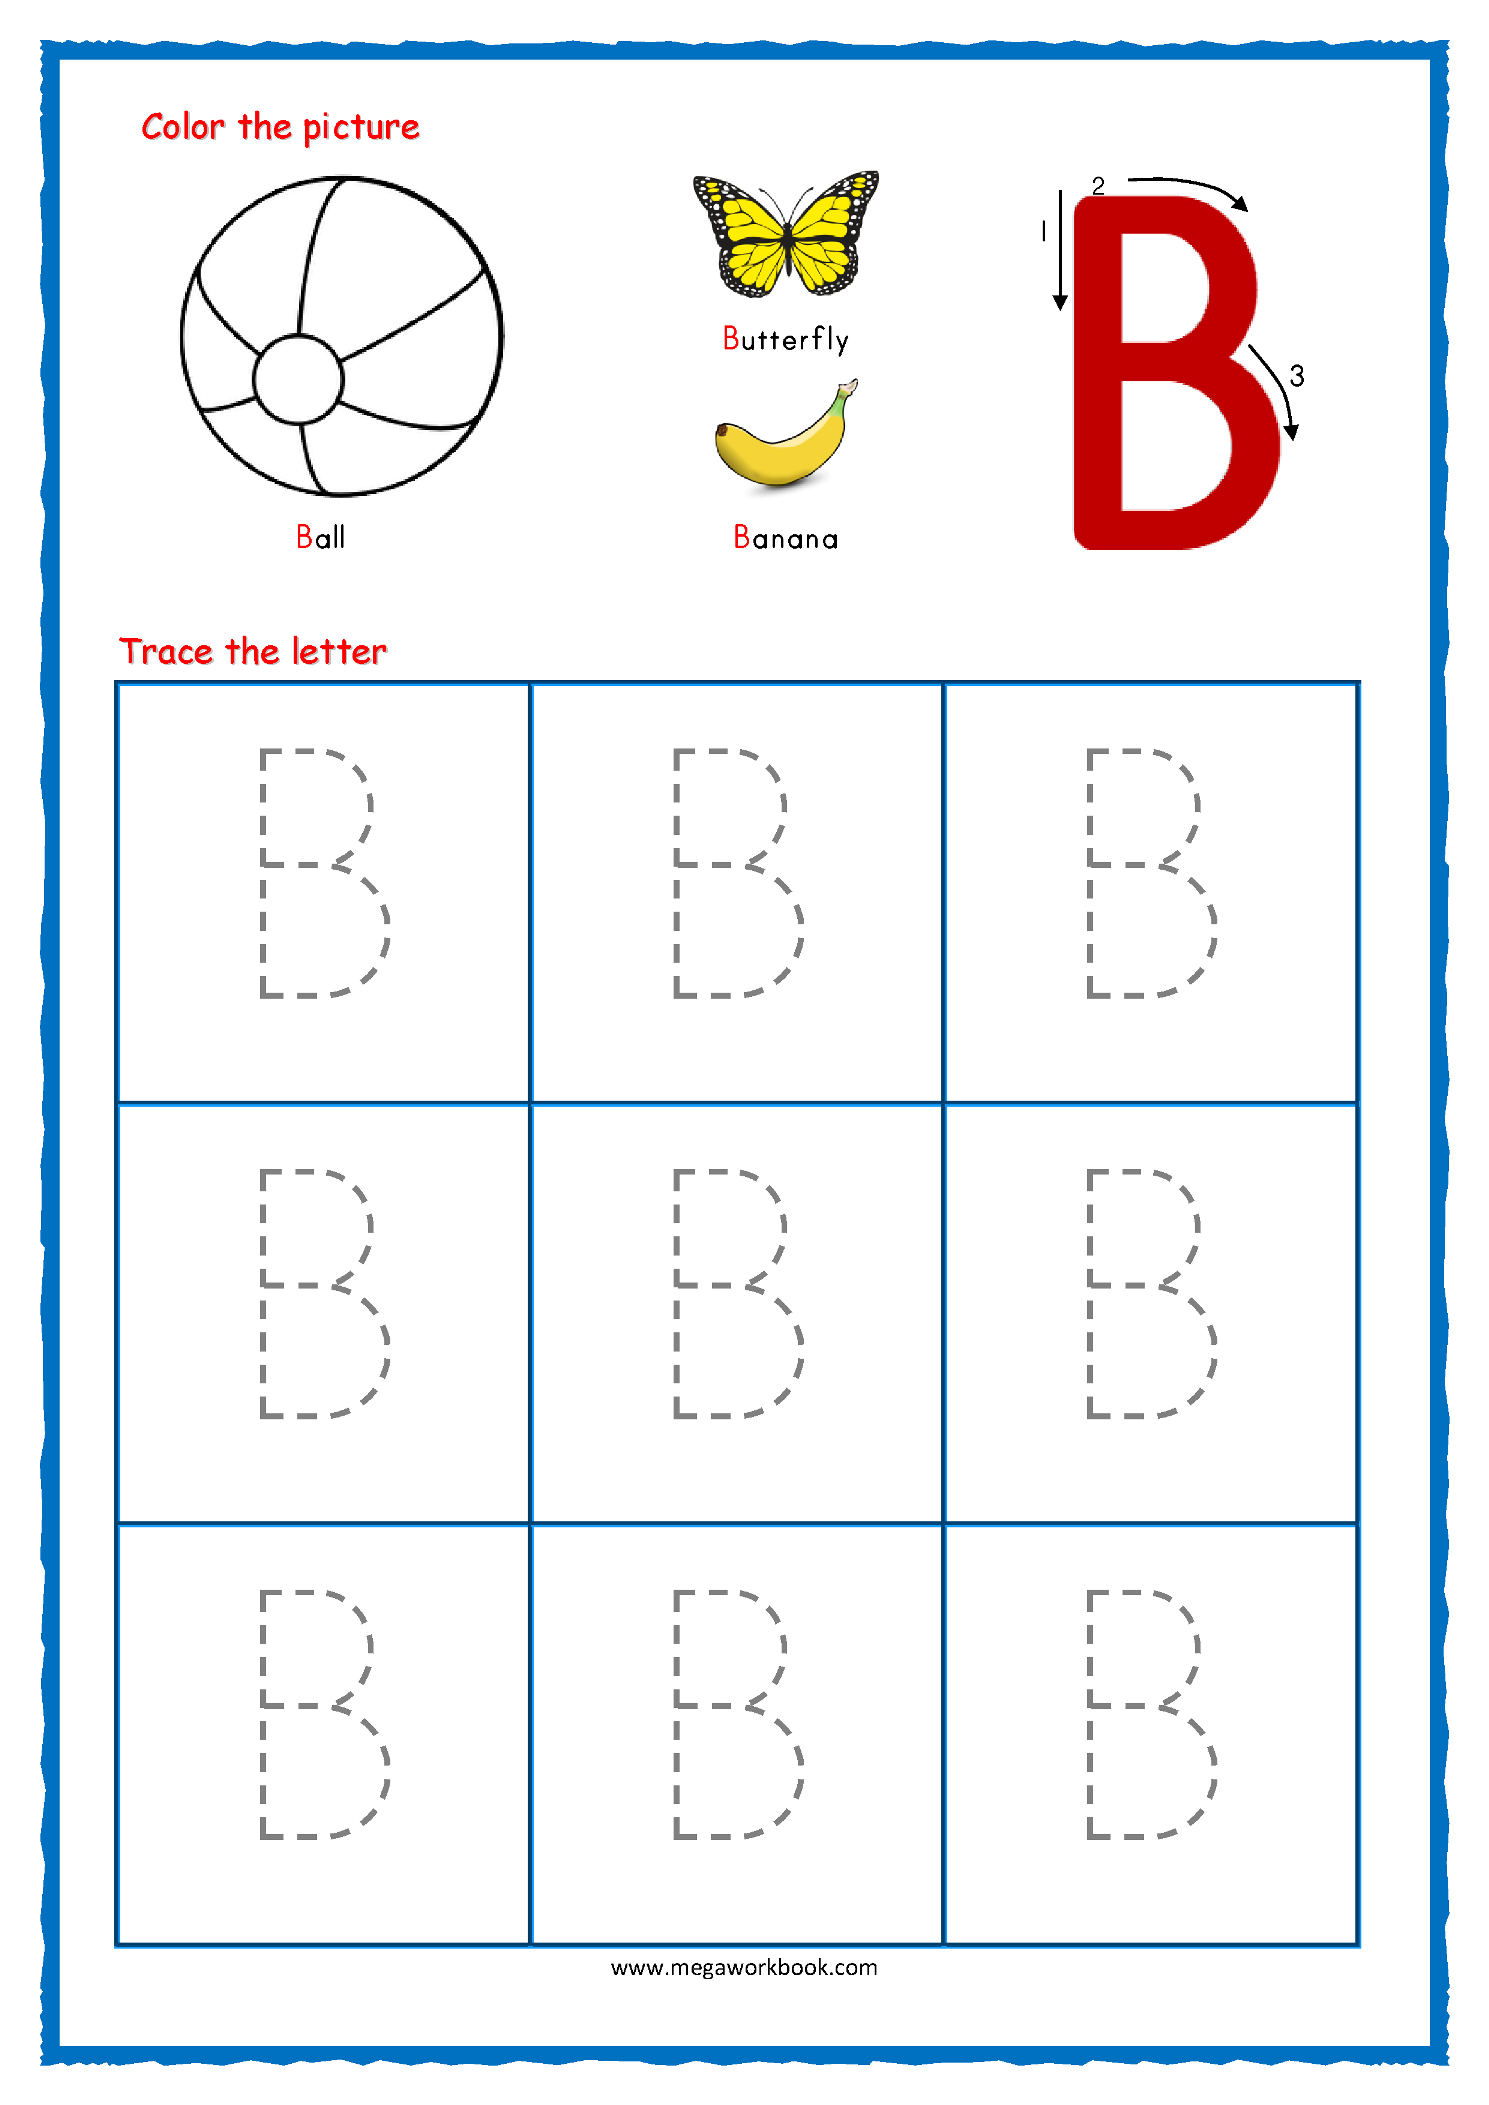 Coloring Book : Letter Tracingts Free Printable Coloring in Tracing Letters Worksheets Printable